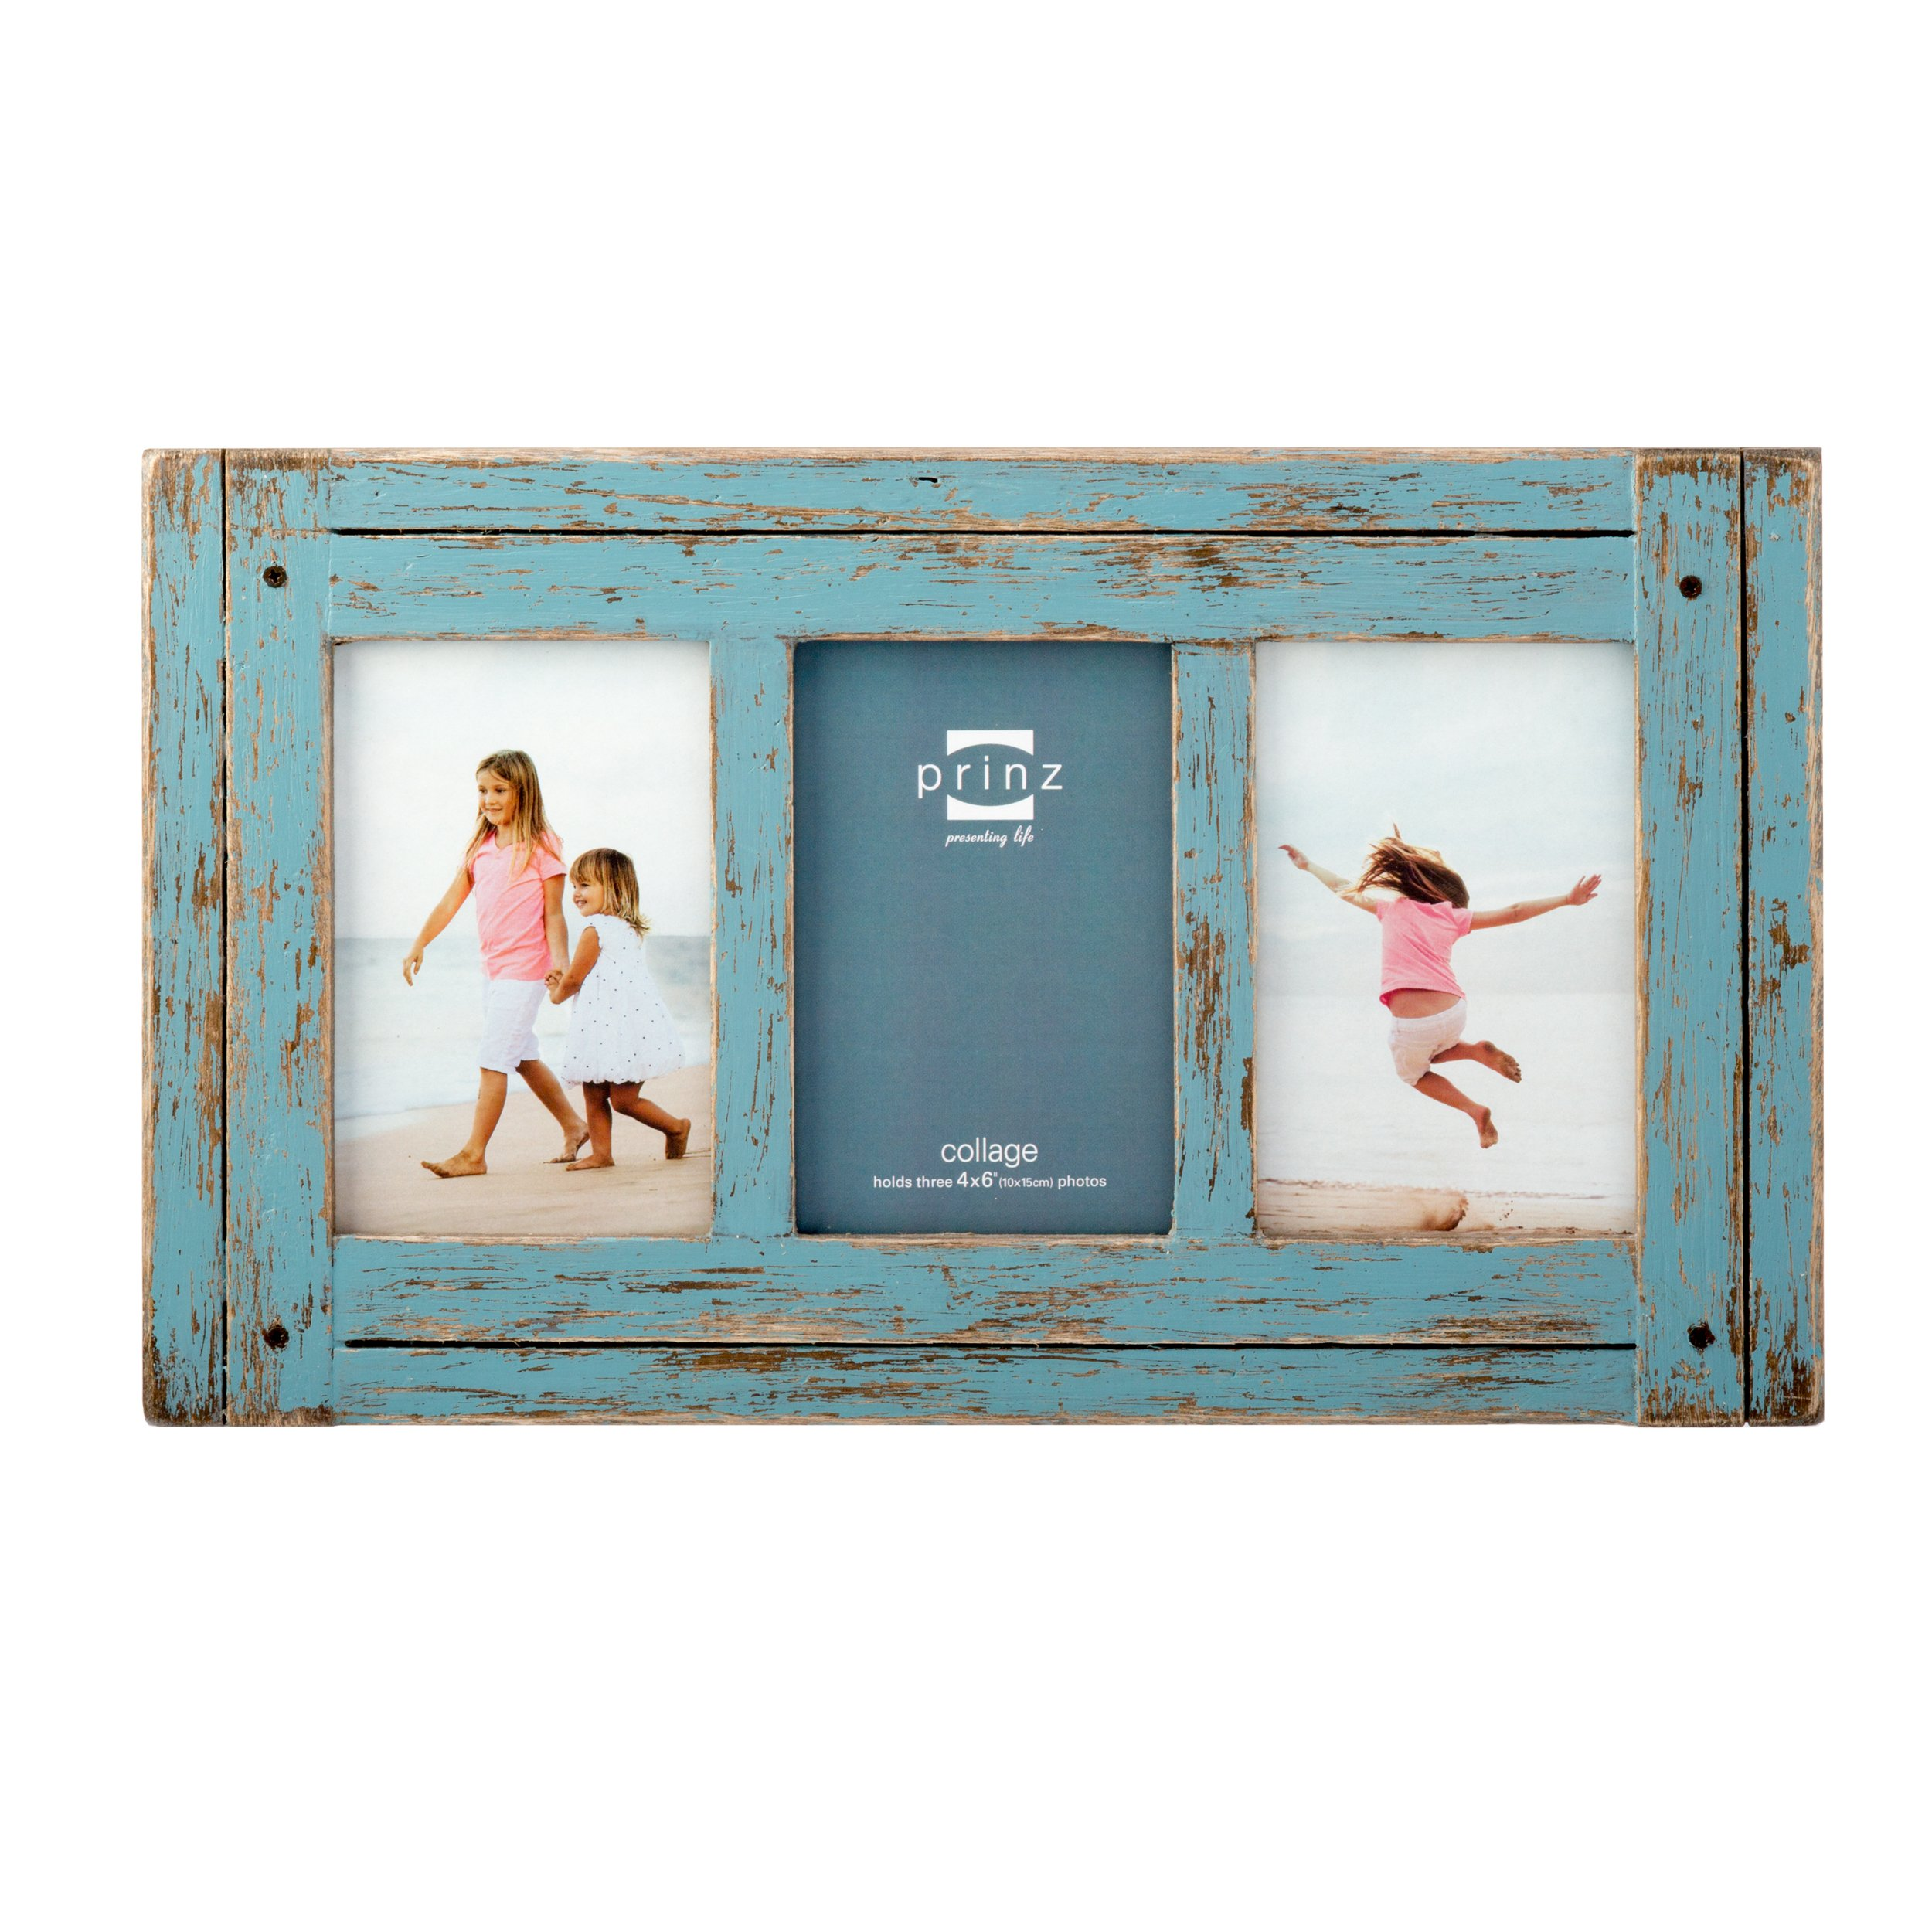 PRINZ Homestead Collage Frame, 4 x 6, Blue by PRINZ